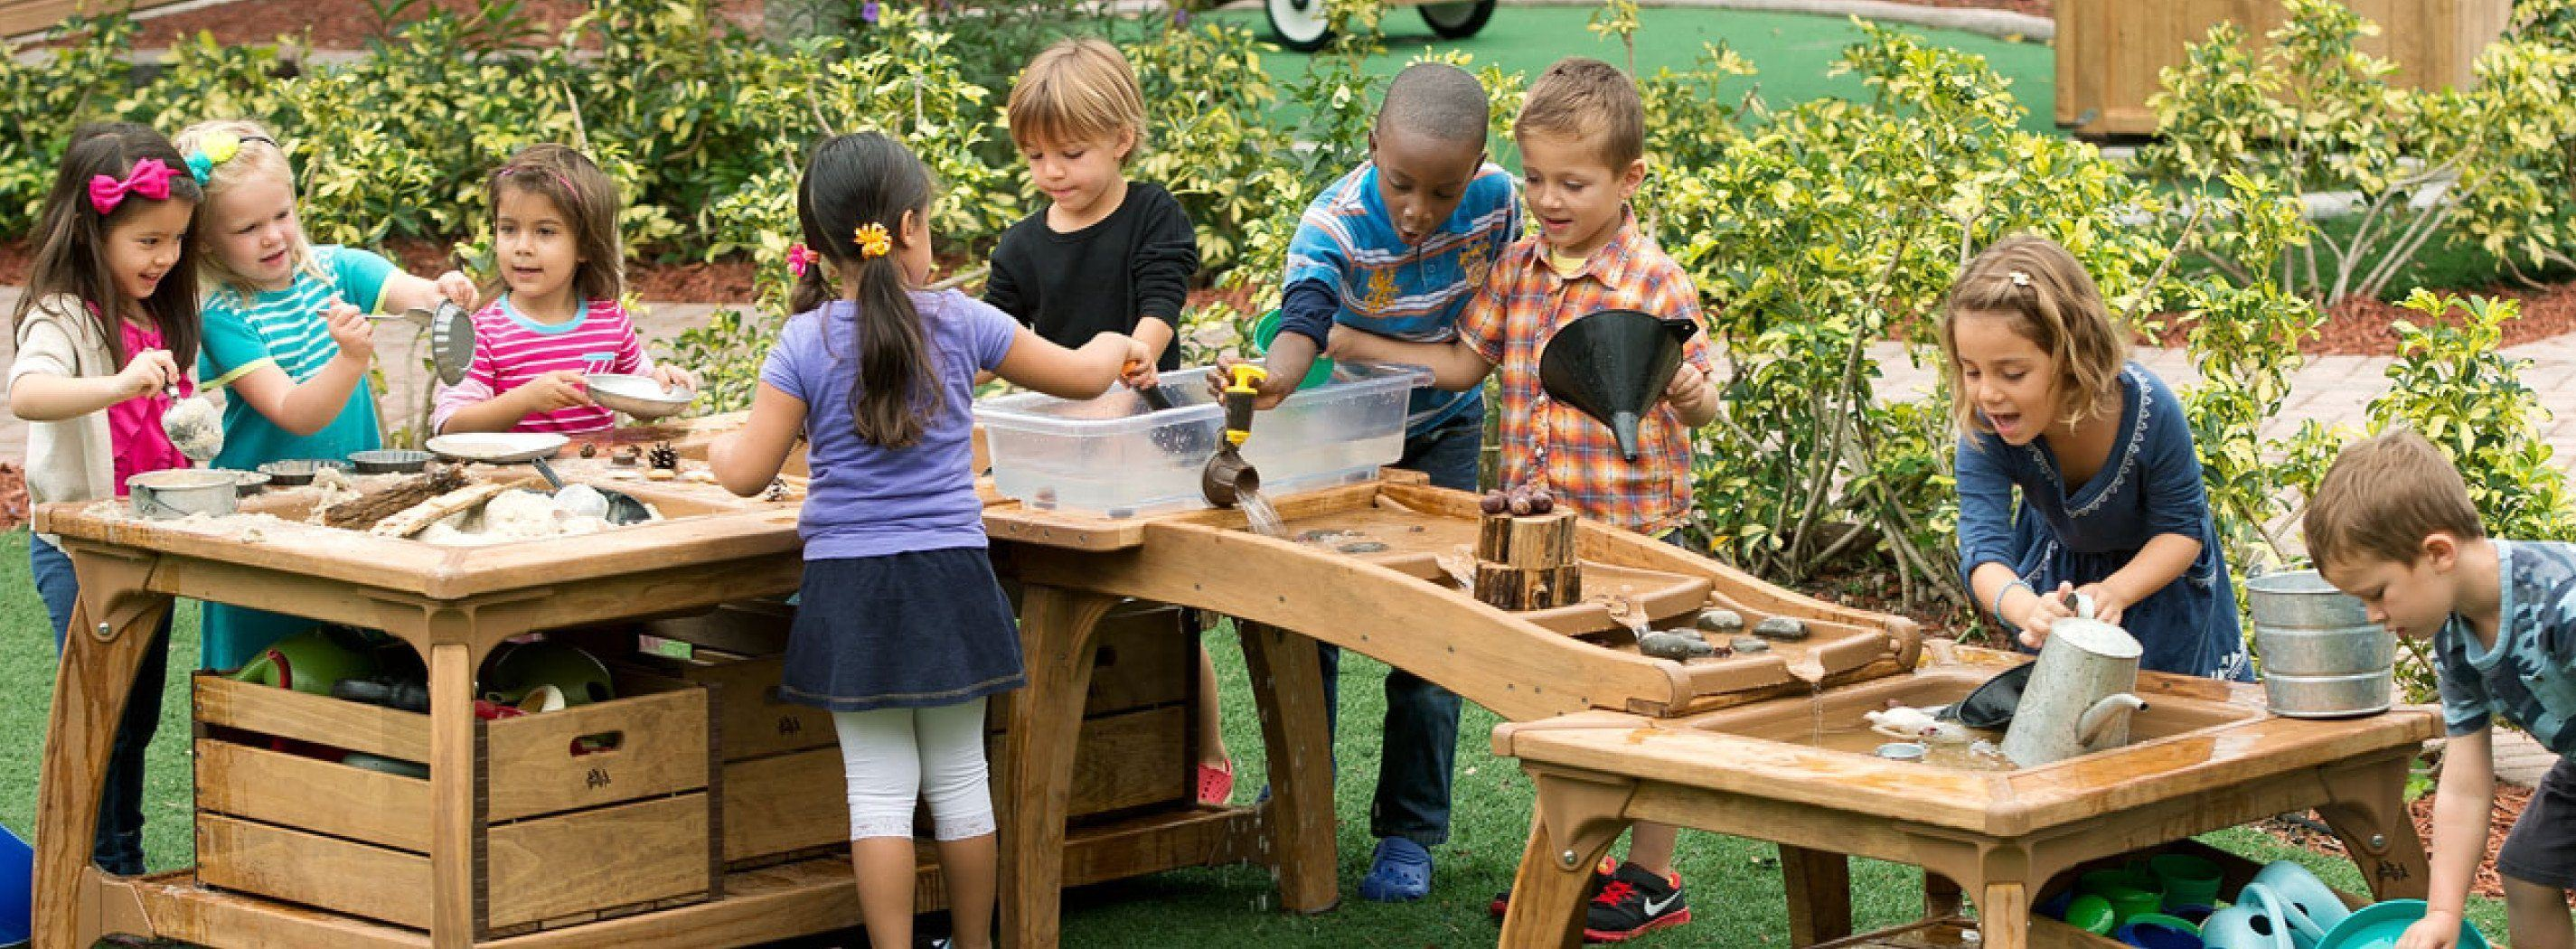 Outlast Outdoor Learning by Community Playthings